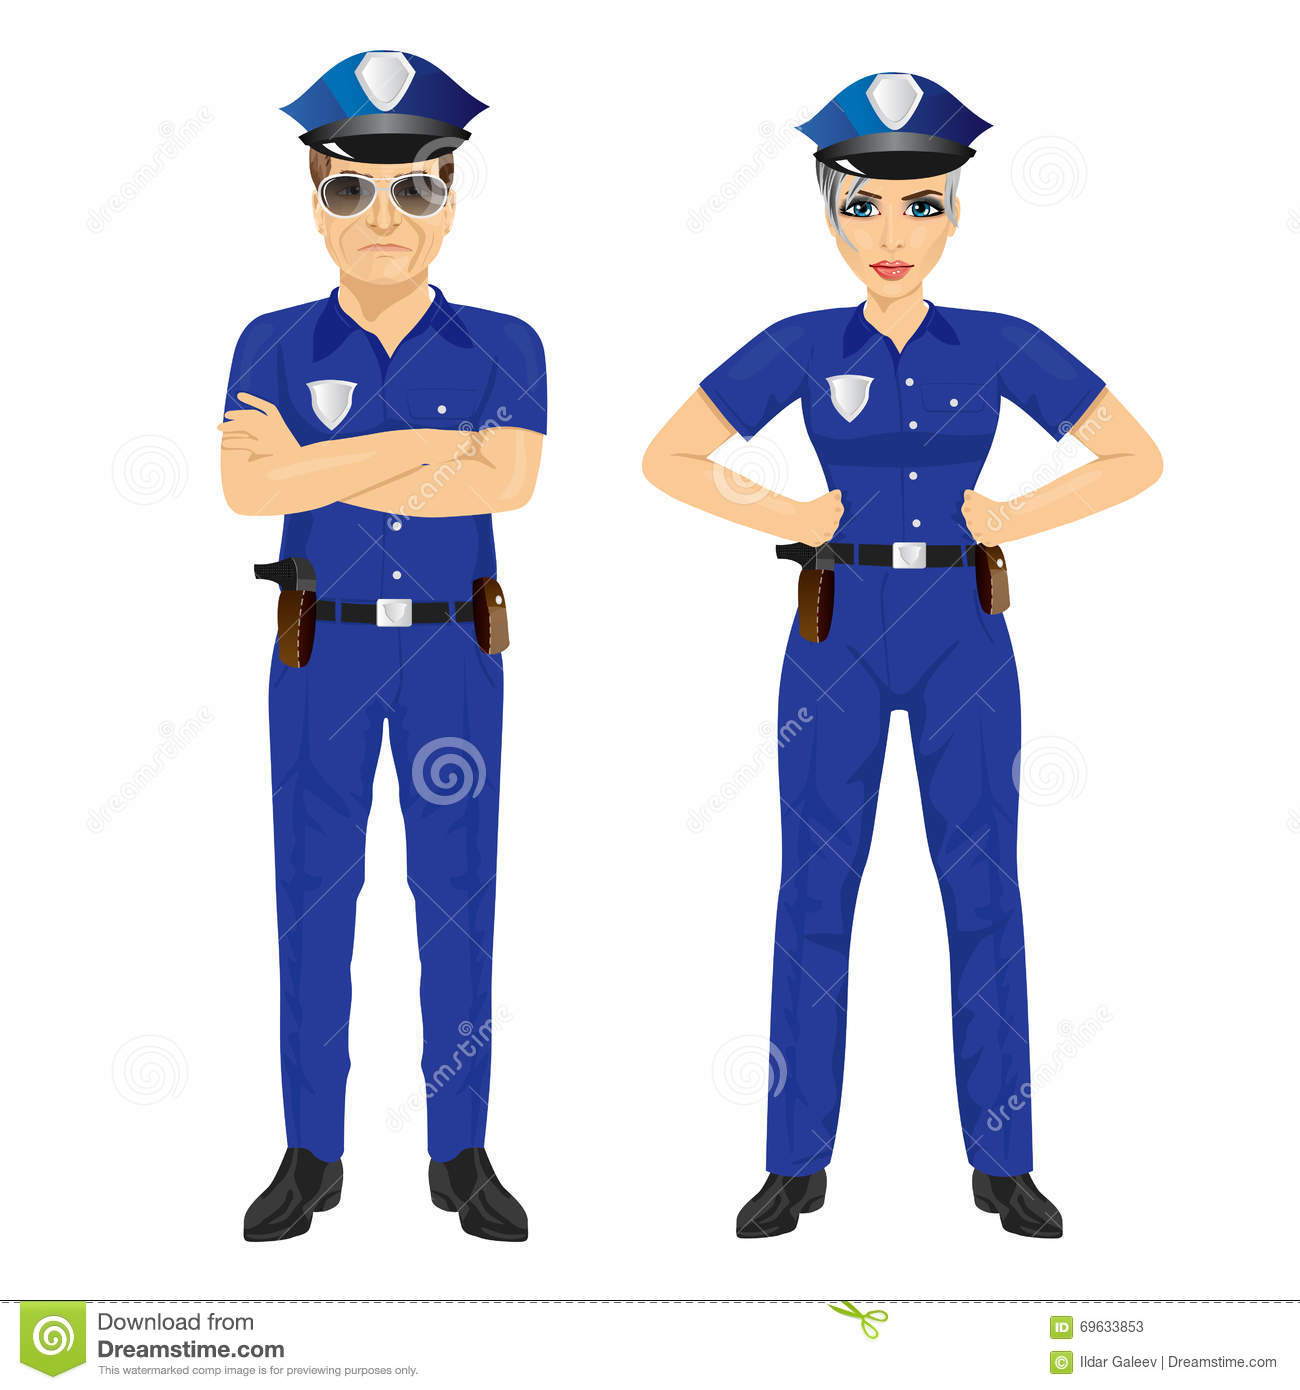 guy dating female cop Dating difficulties why is it so hard for female cops to find success on the dating scene june 02,  this is a result of men getting married and no longer dating, older men dating younger.